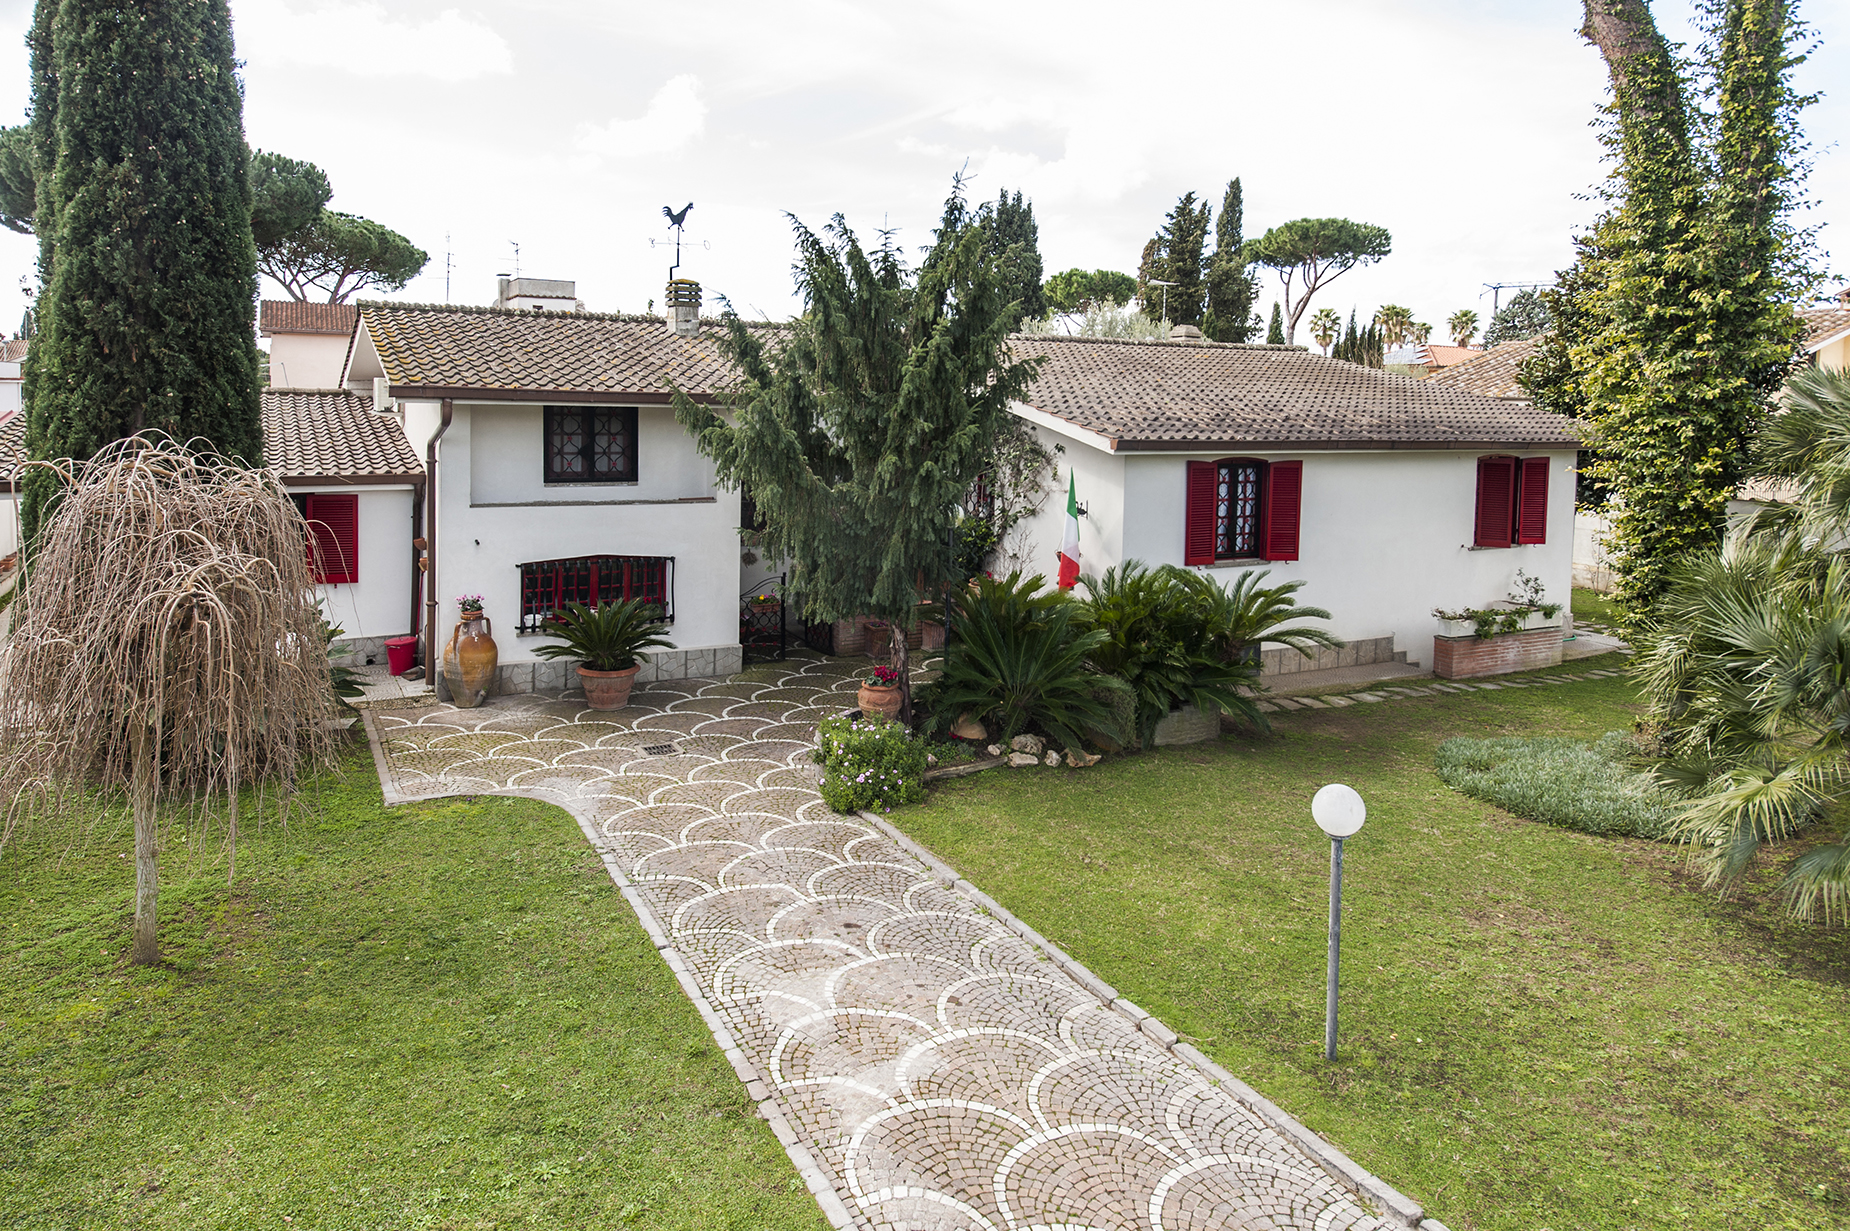 Single Family Home for Sale at Villa with large garden in the Eur Infernetto neighborhood Via Fortezza Rome, Rome 00124 Italy